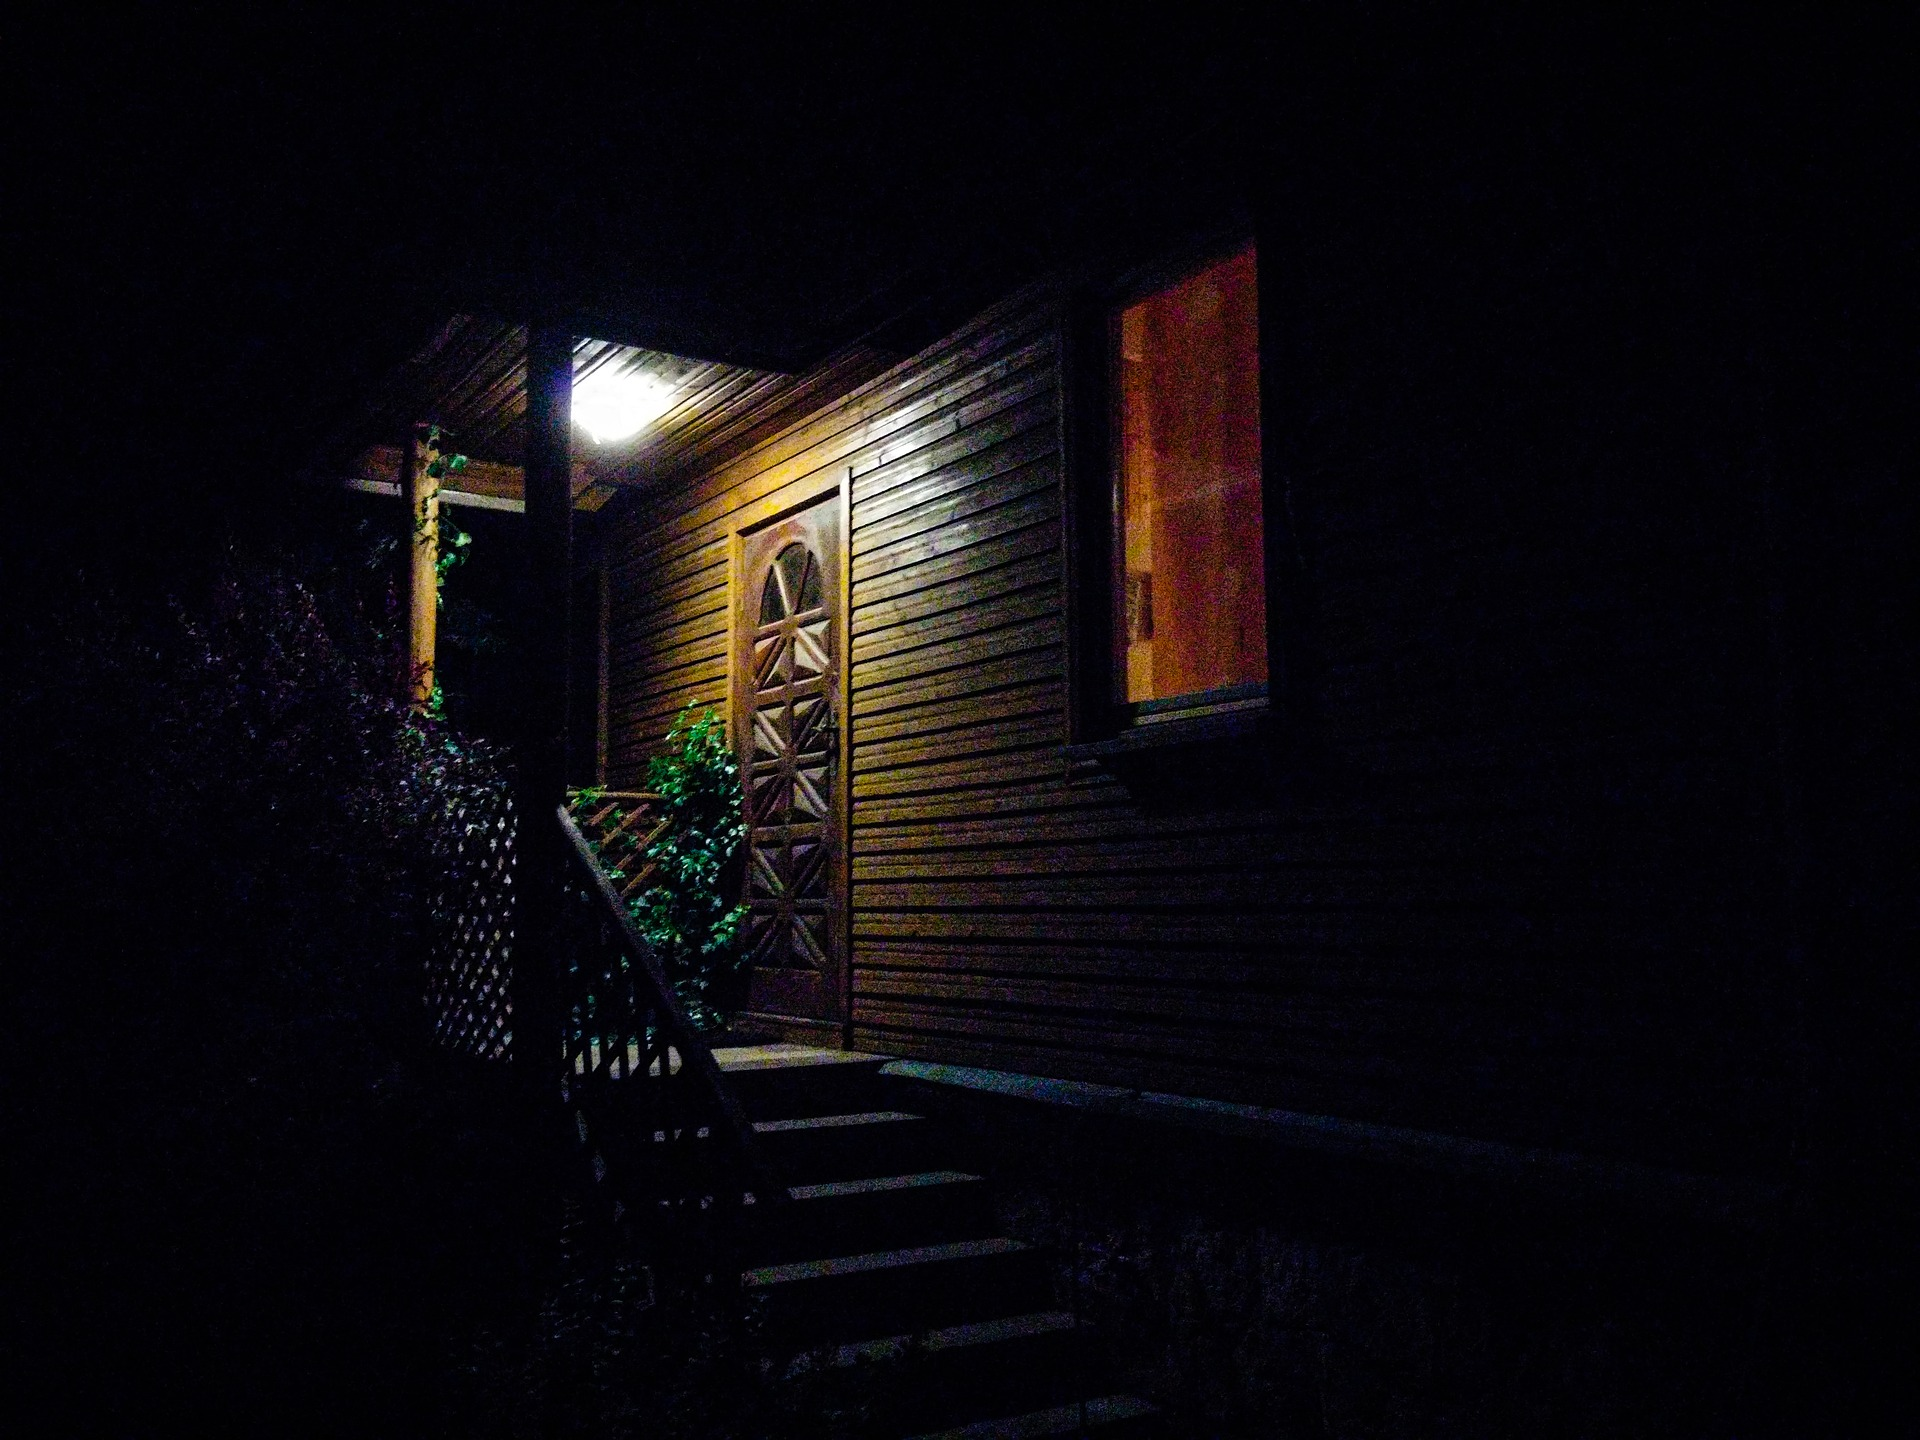 Make sure your home's stairs, sidewalks, and doors are well lit this season.